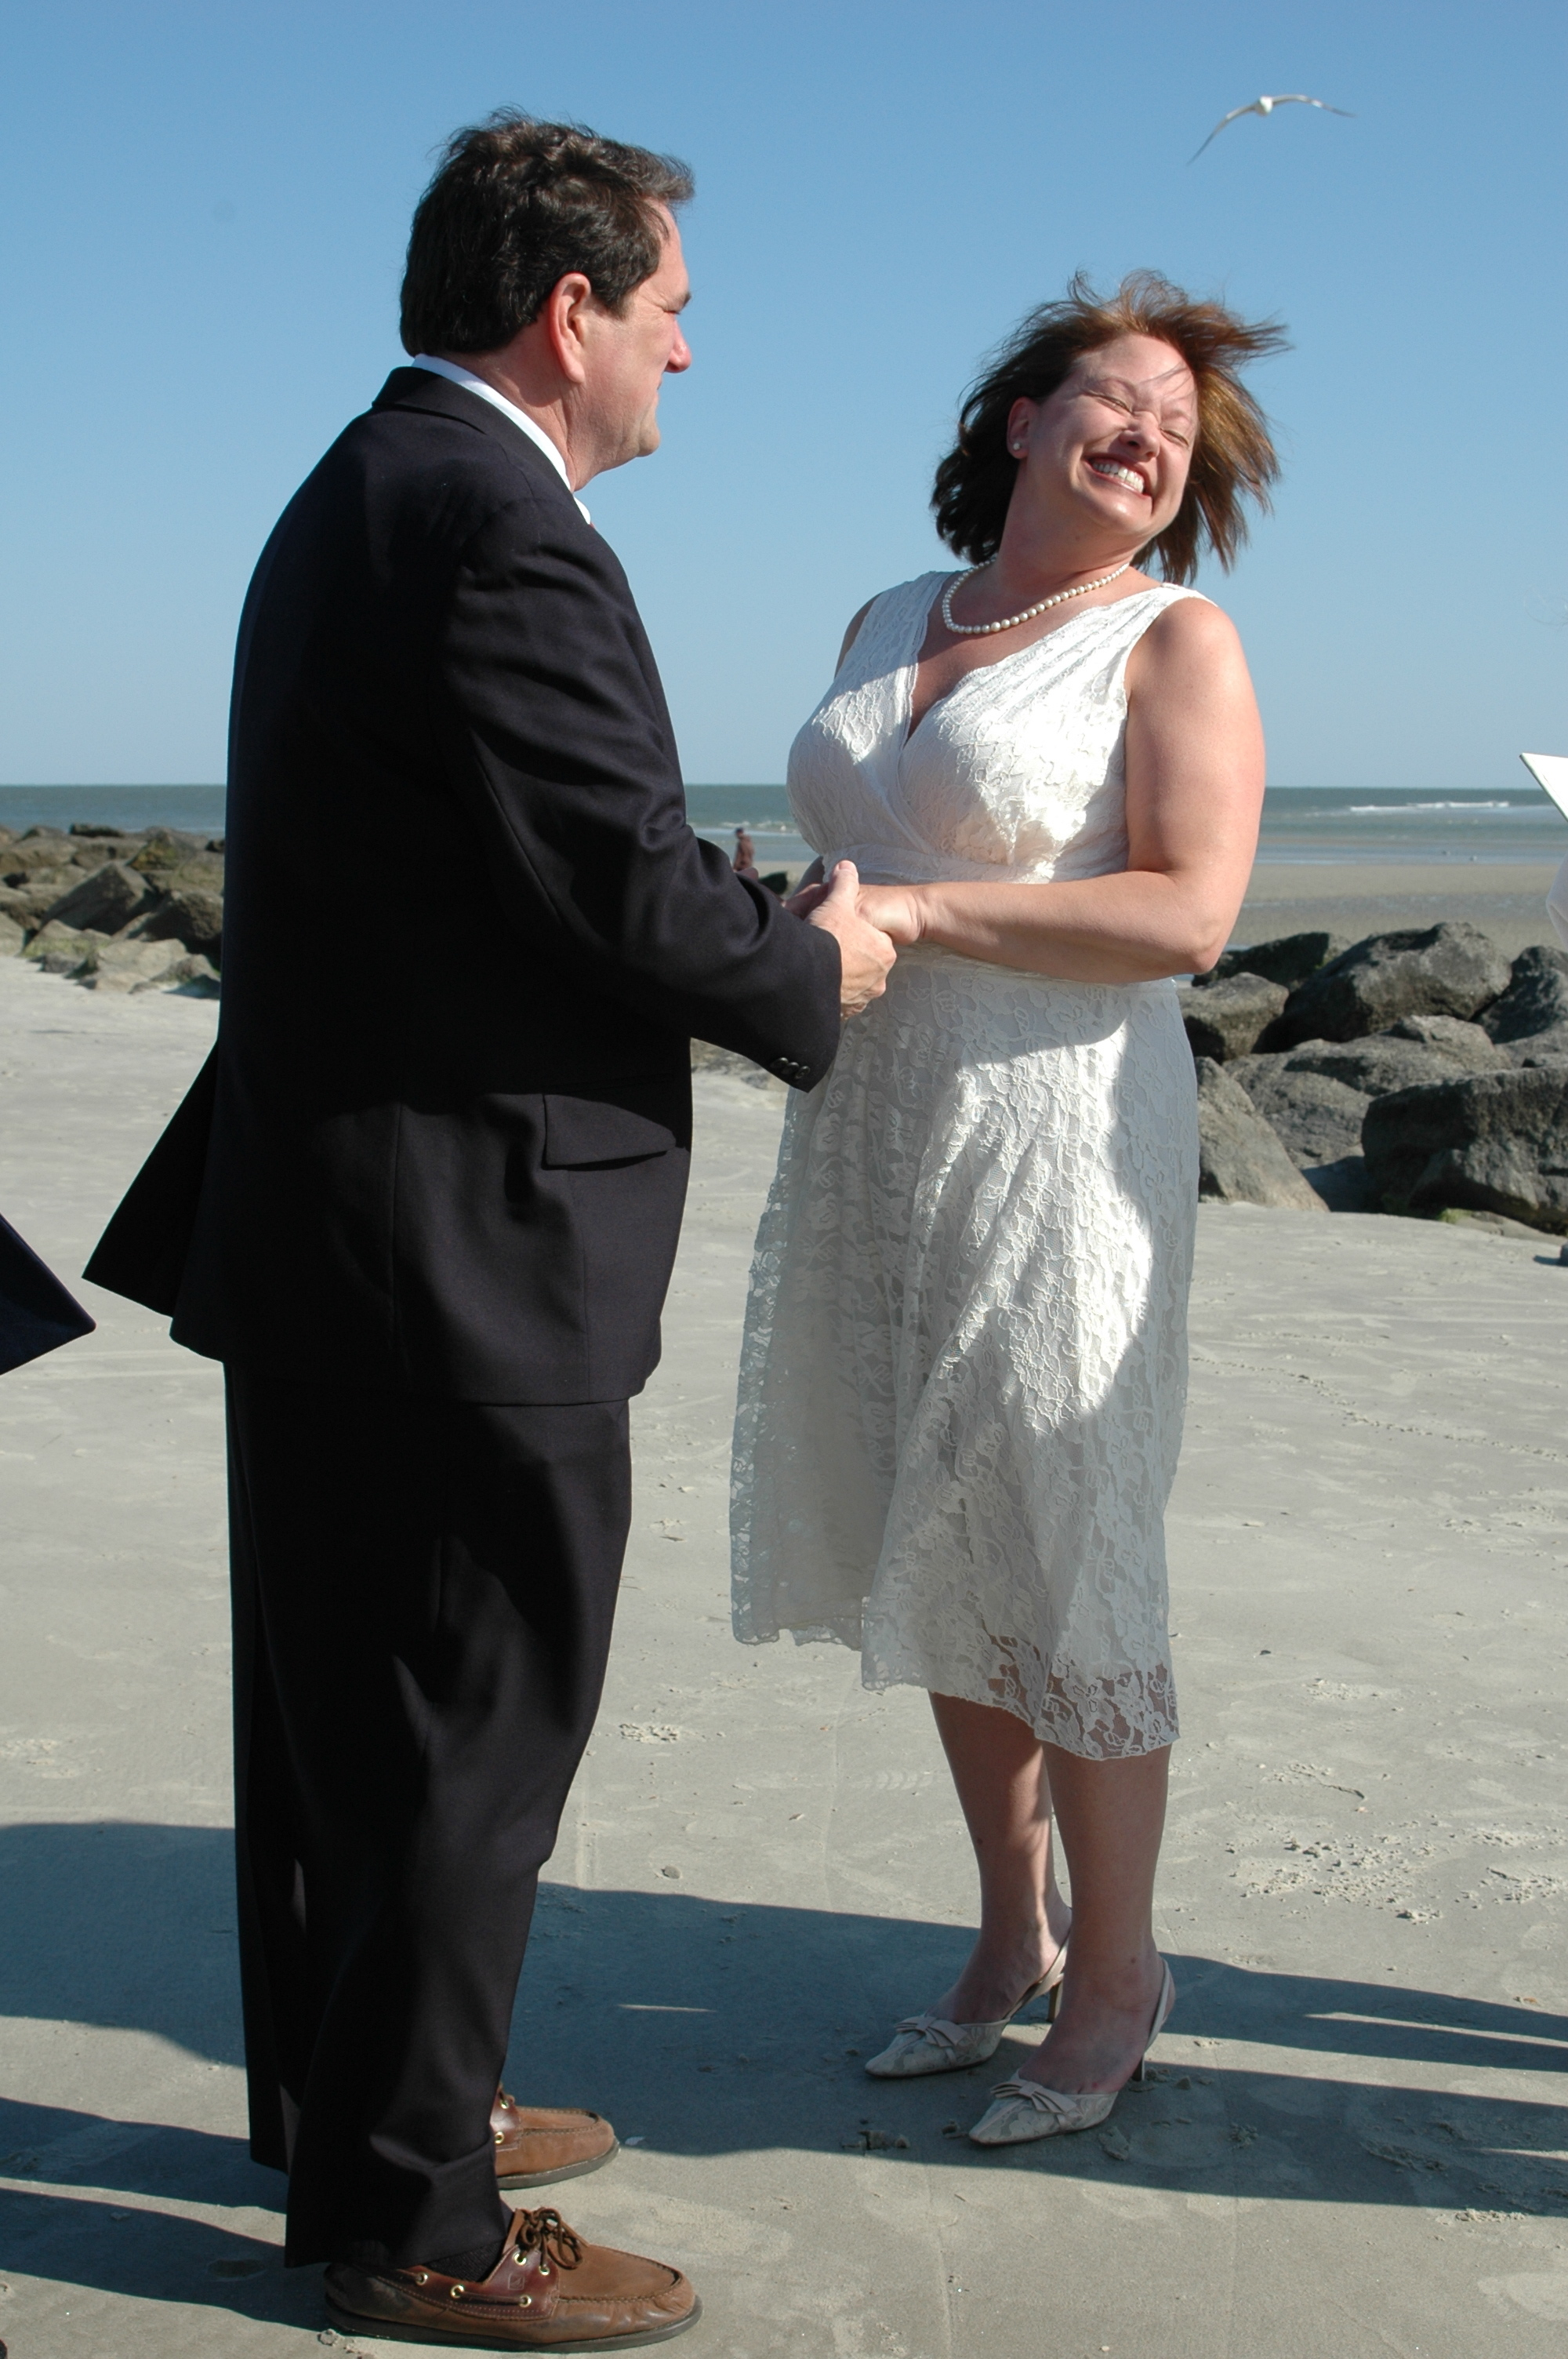 Ceremony, Flowers & Decor, Beach, Beach Wedding Flowers & Decor, Wedding, Island, Tybee island wedding, Tybee